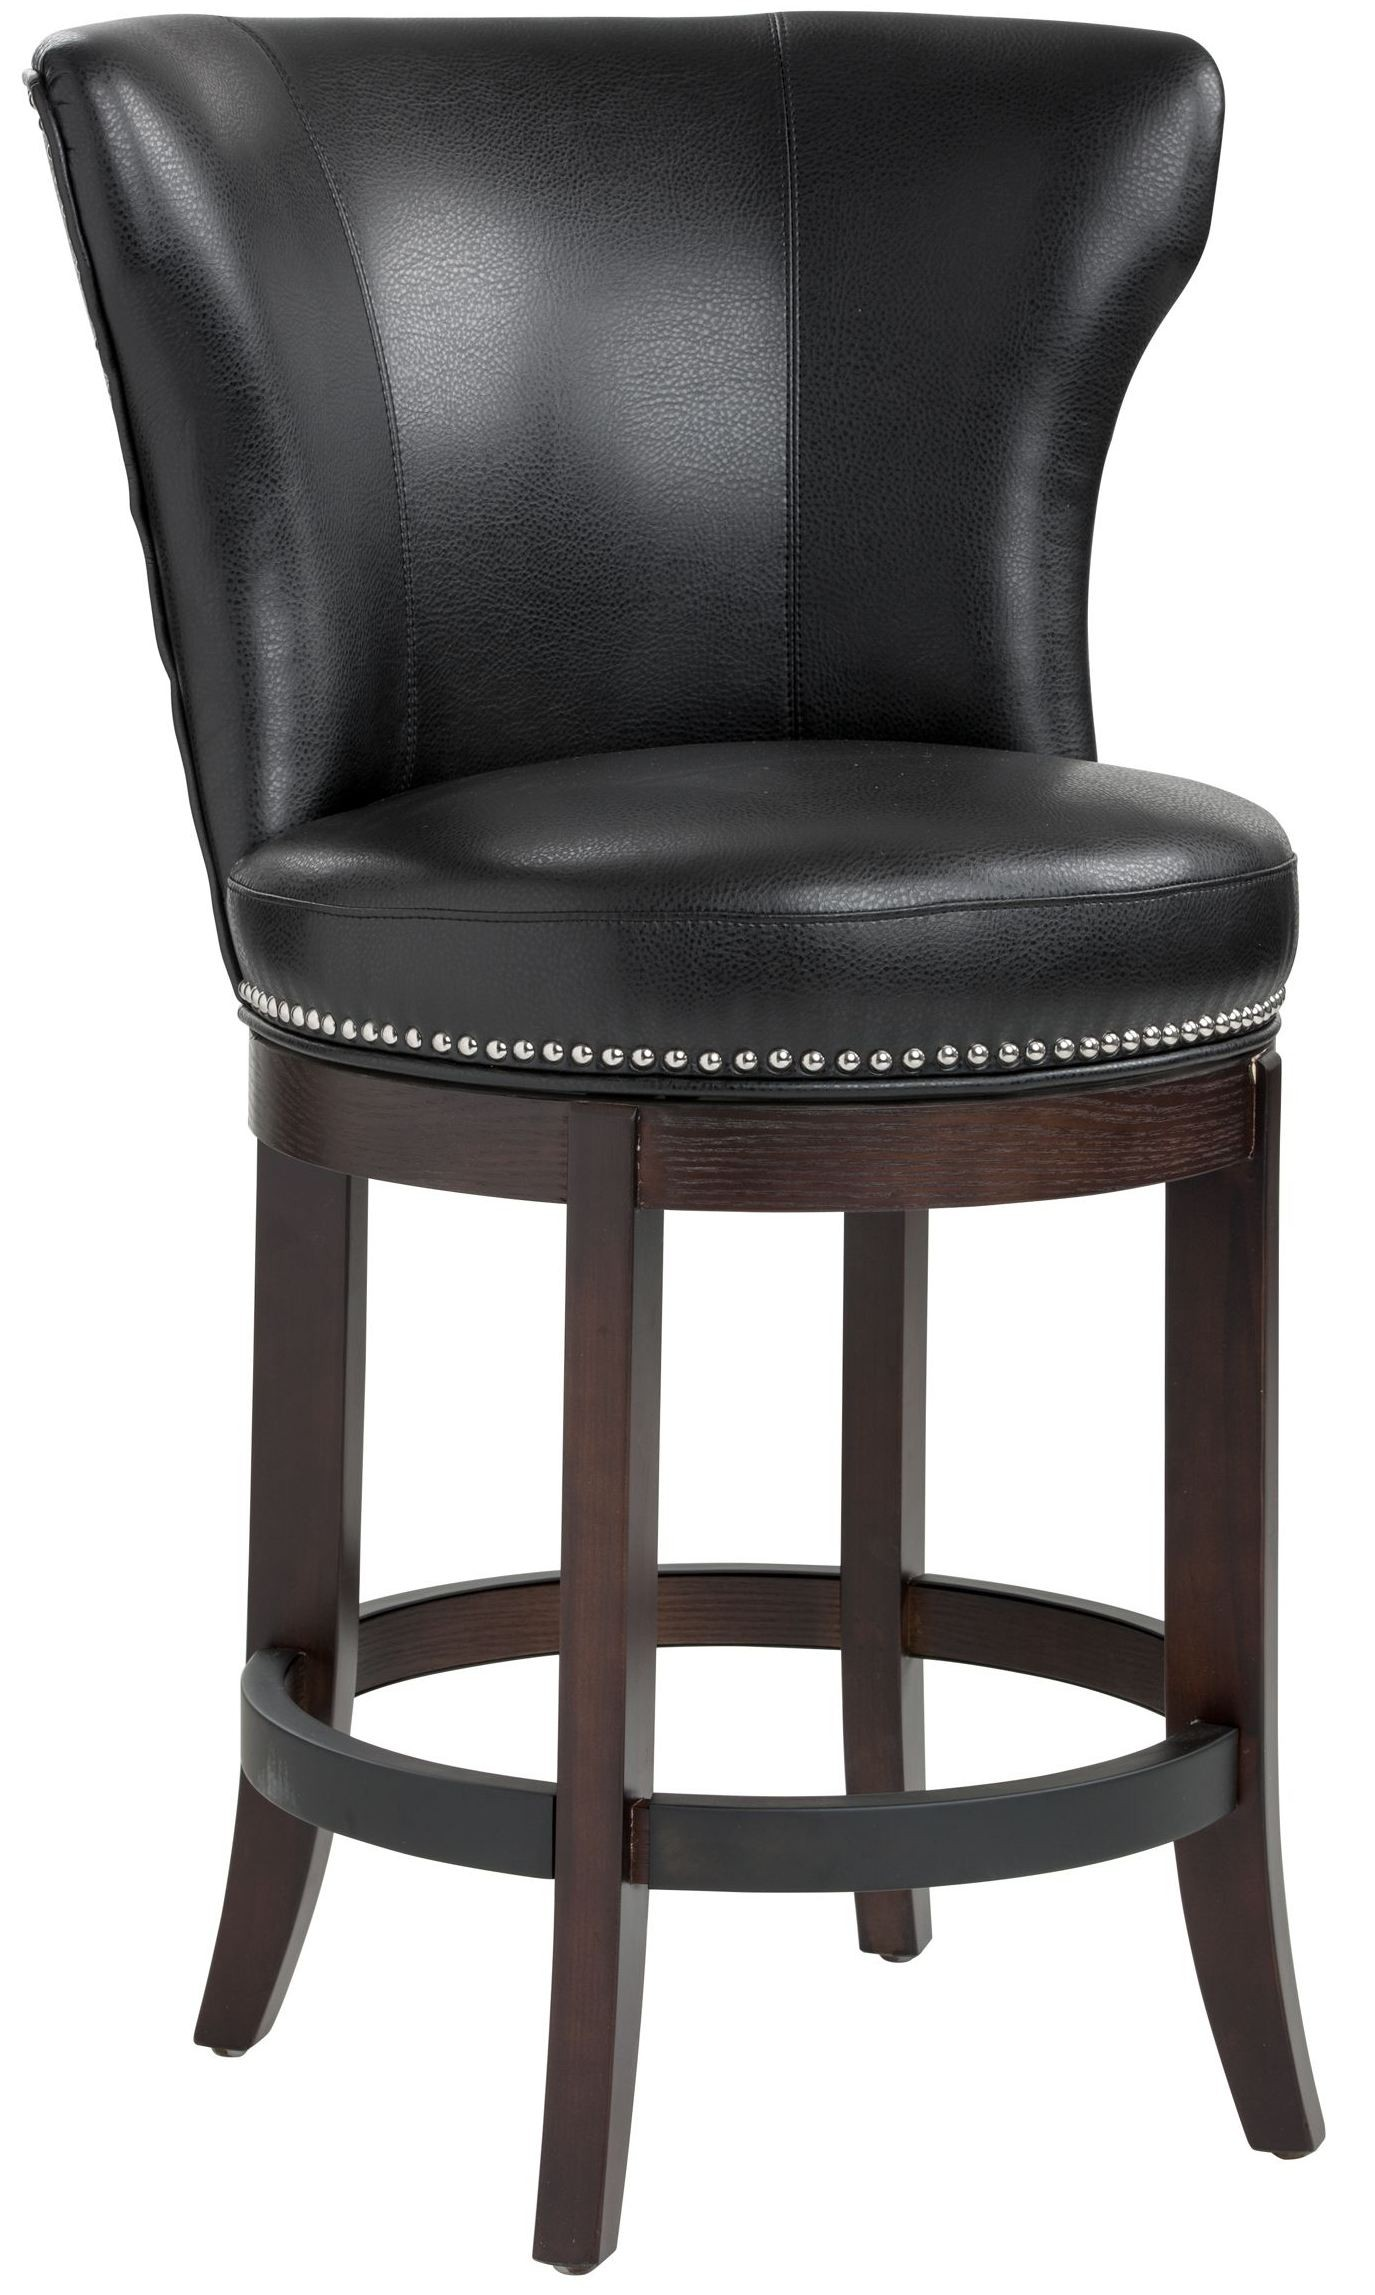 Tavern Black Leather Swivel Counter Stool 54922 Sunpan